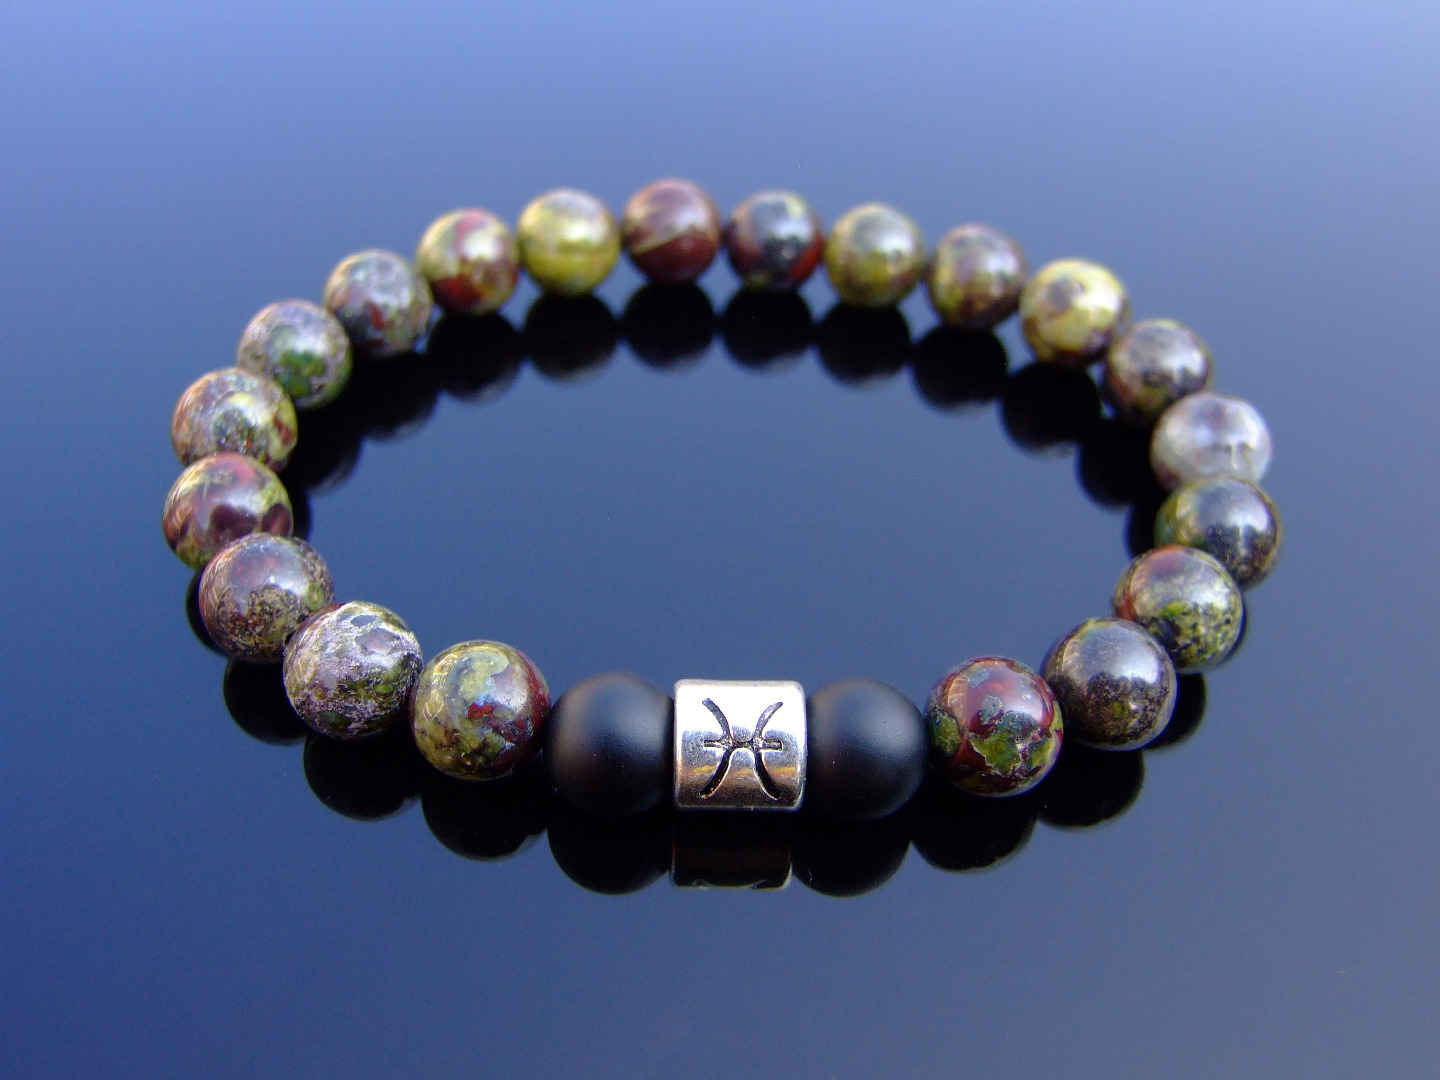 Details about Pisces Bloodstone Onyx Birthstone Bracelet 6-9'' Elasticated  Healing Stone